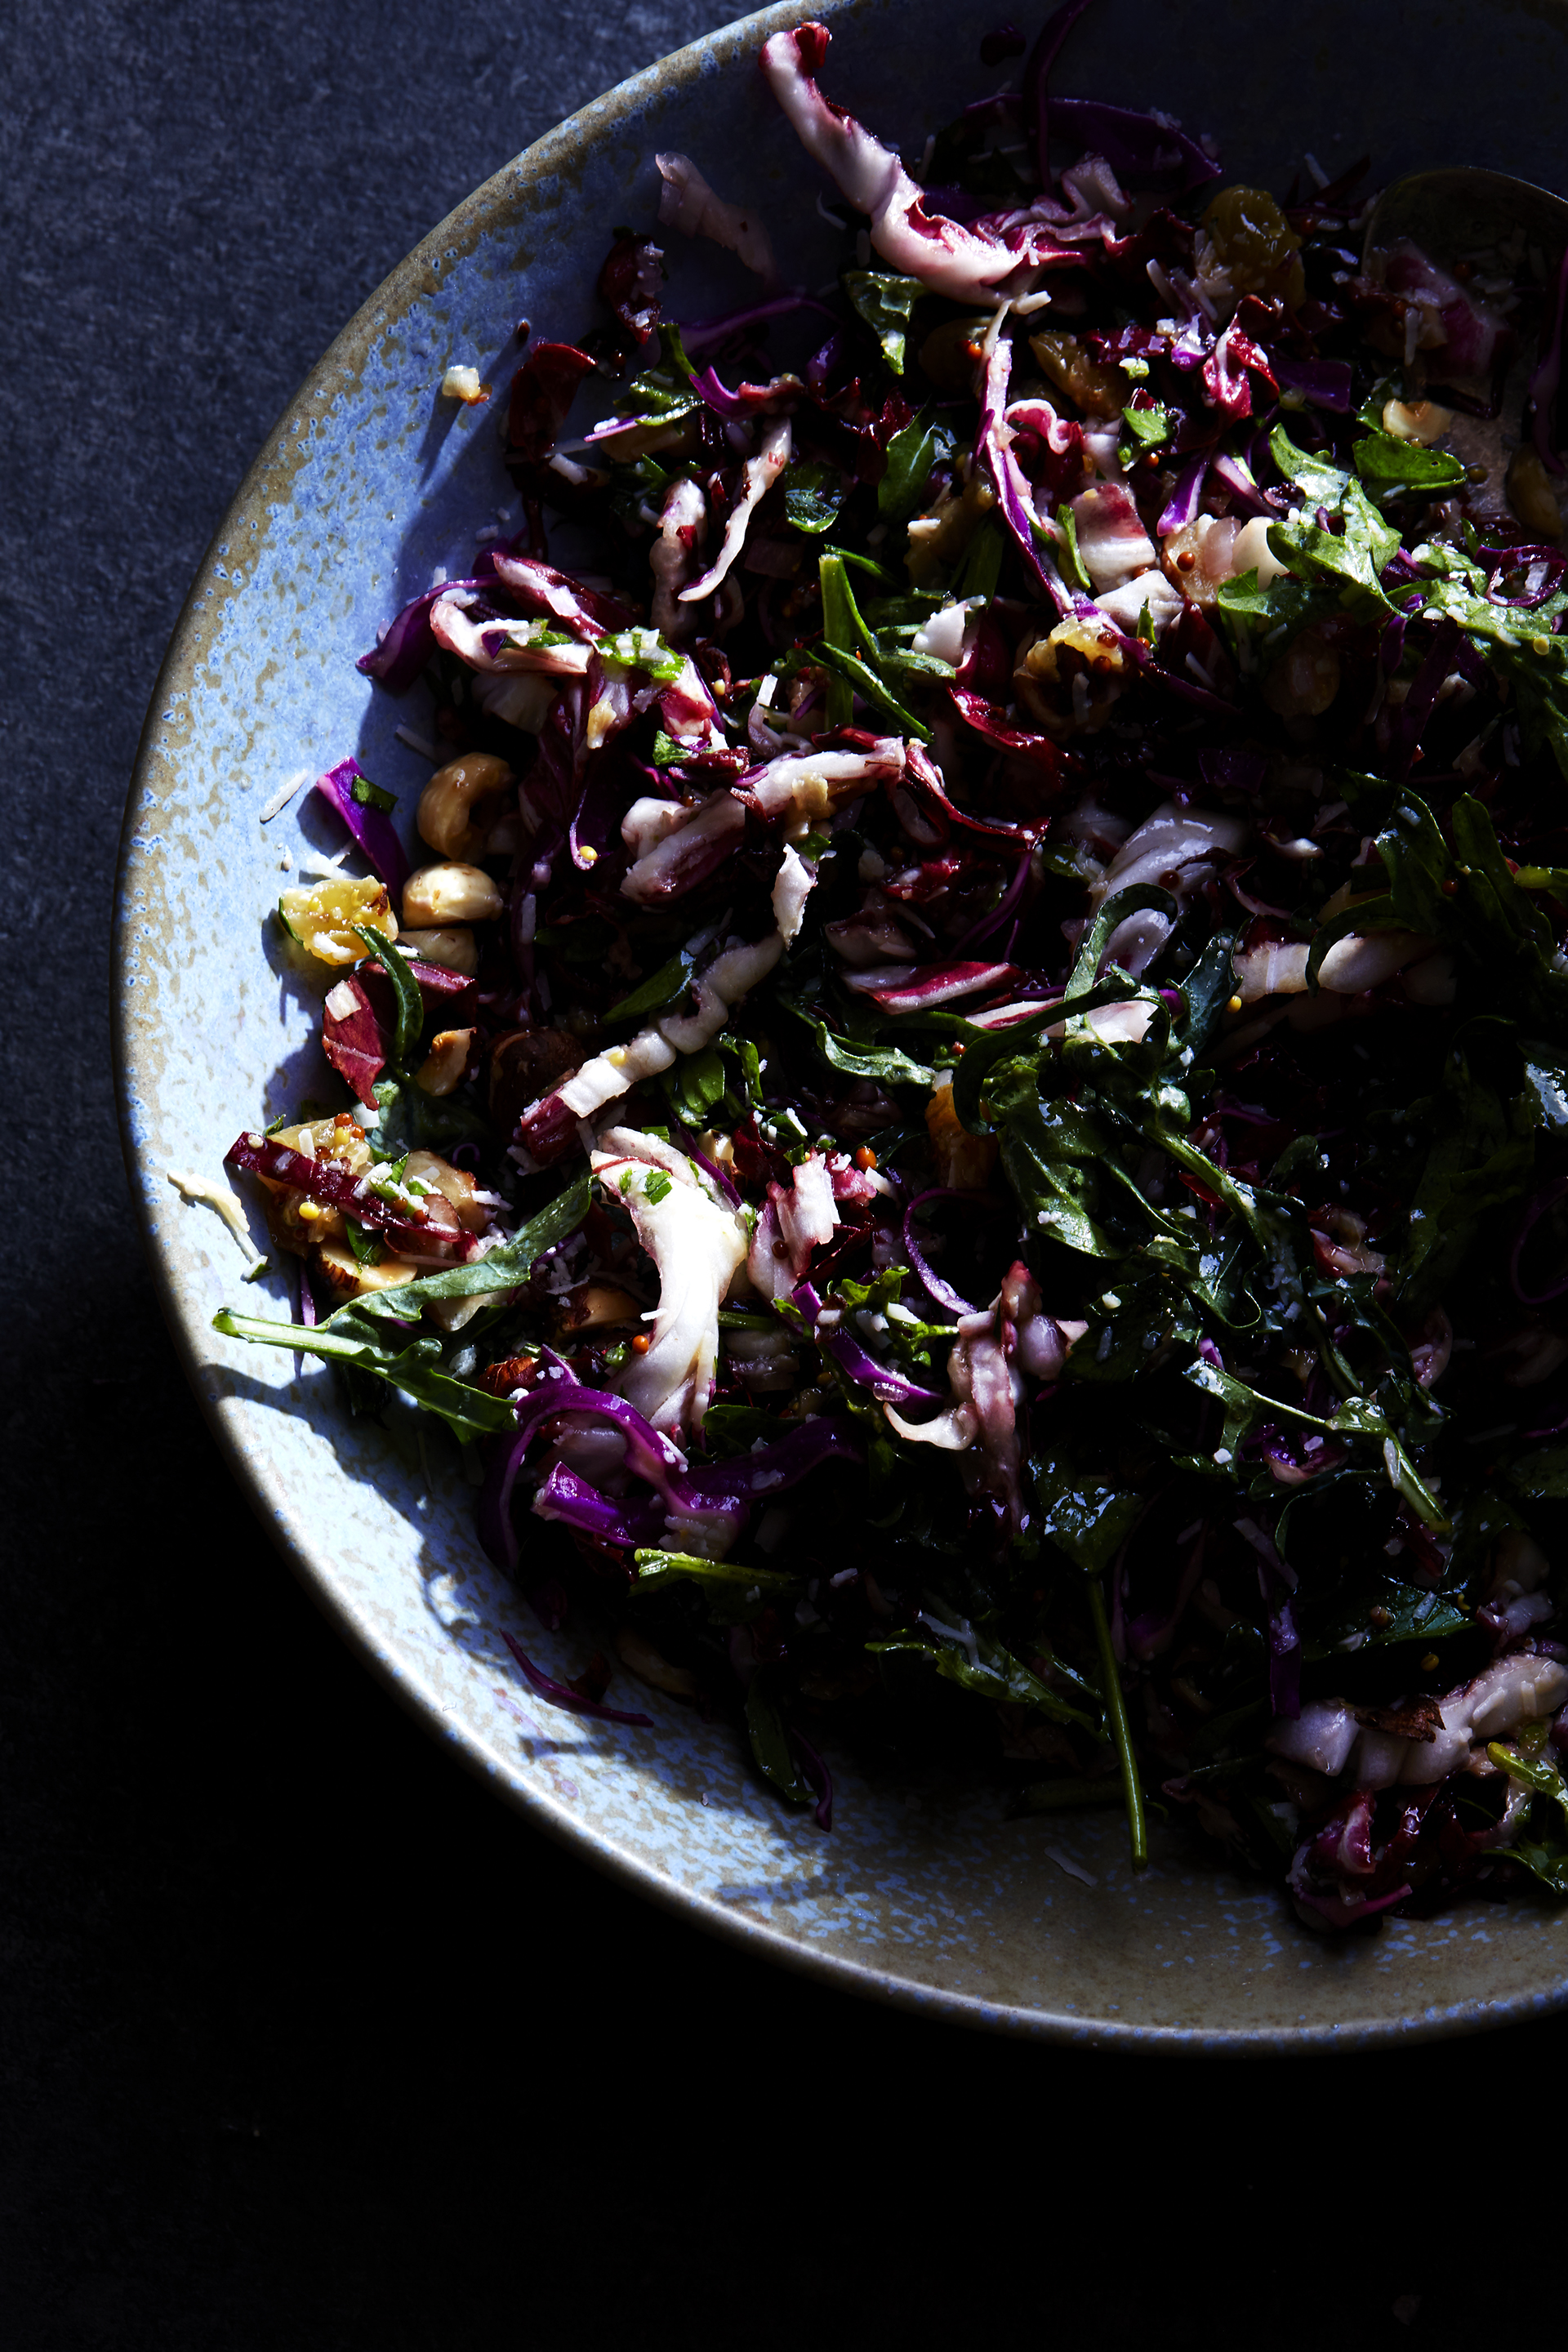 Radicchio Salad with Hazelnuts, Parsley, Parmesan (GF, V)